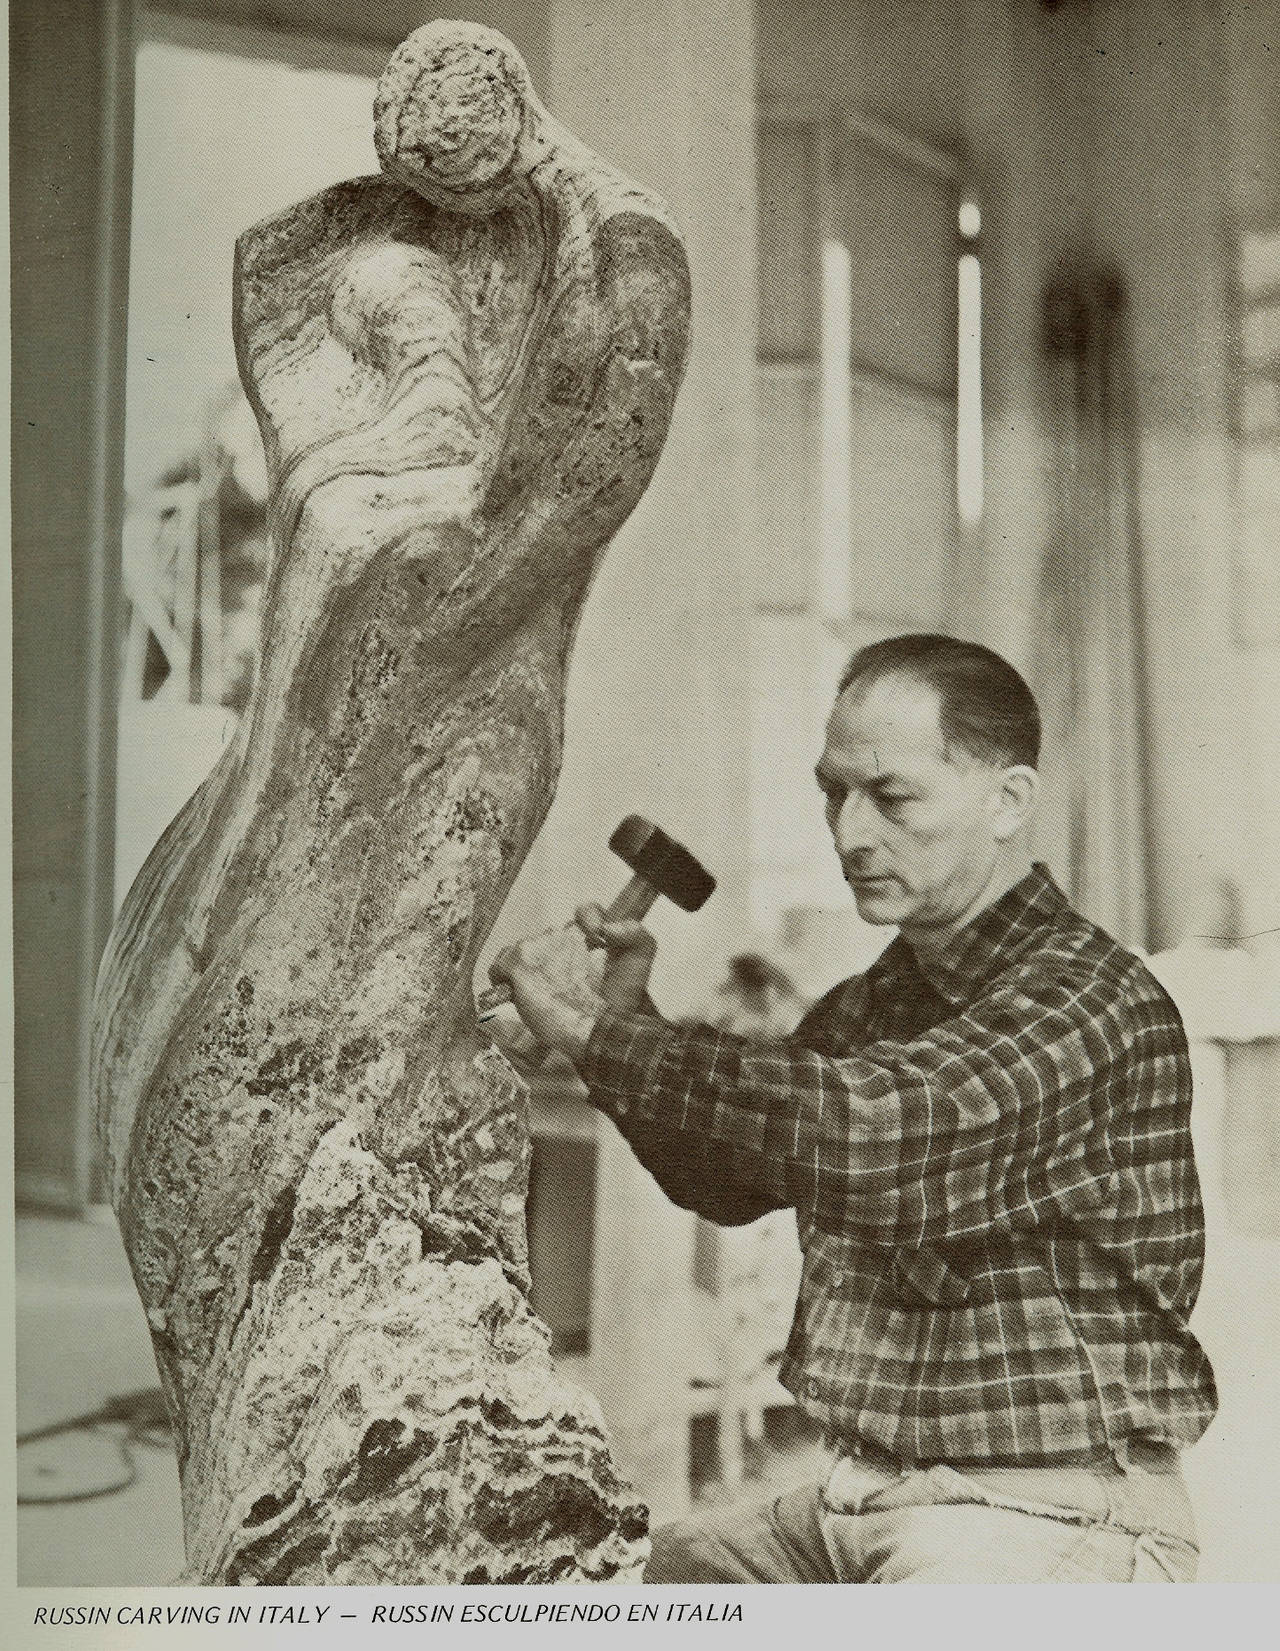 It is with great pleasure that we present the original works of American artist Robert Russin (1914-2007)  Robert Russin began his career as a WPA sculptor, and received dozens of commissions during his career both public and private. Russin